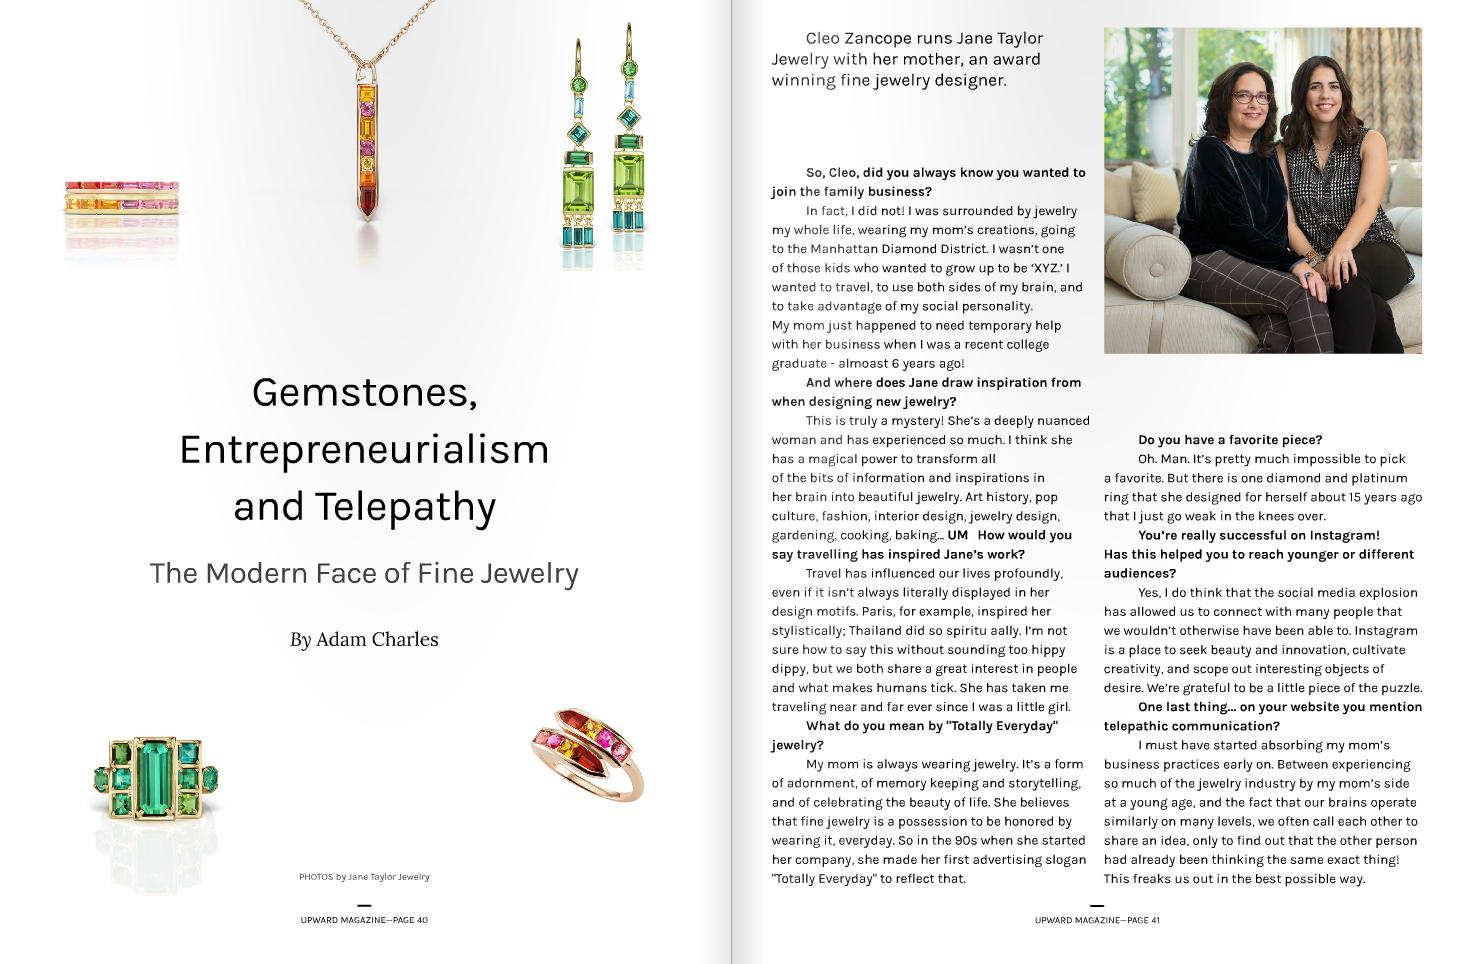 Upward Magazine, Issue 2 - Gemstones, Entrepreneurialsim and Telepathy: The Modern Face of Fine Jewlry - Profile on Jane Taylor Jewelry